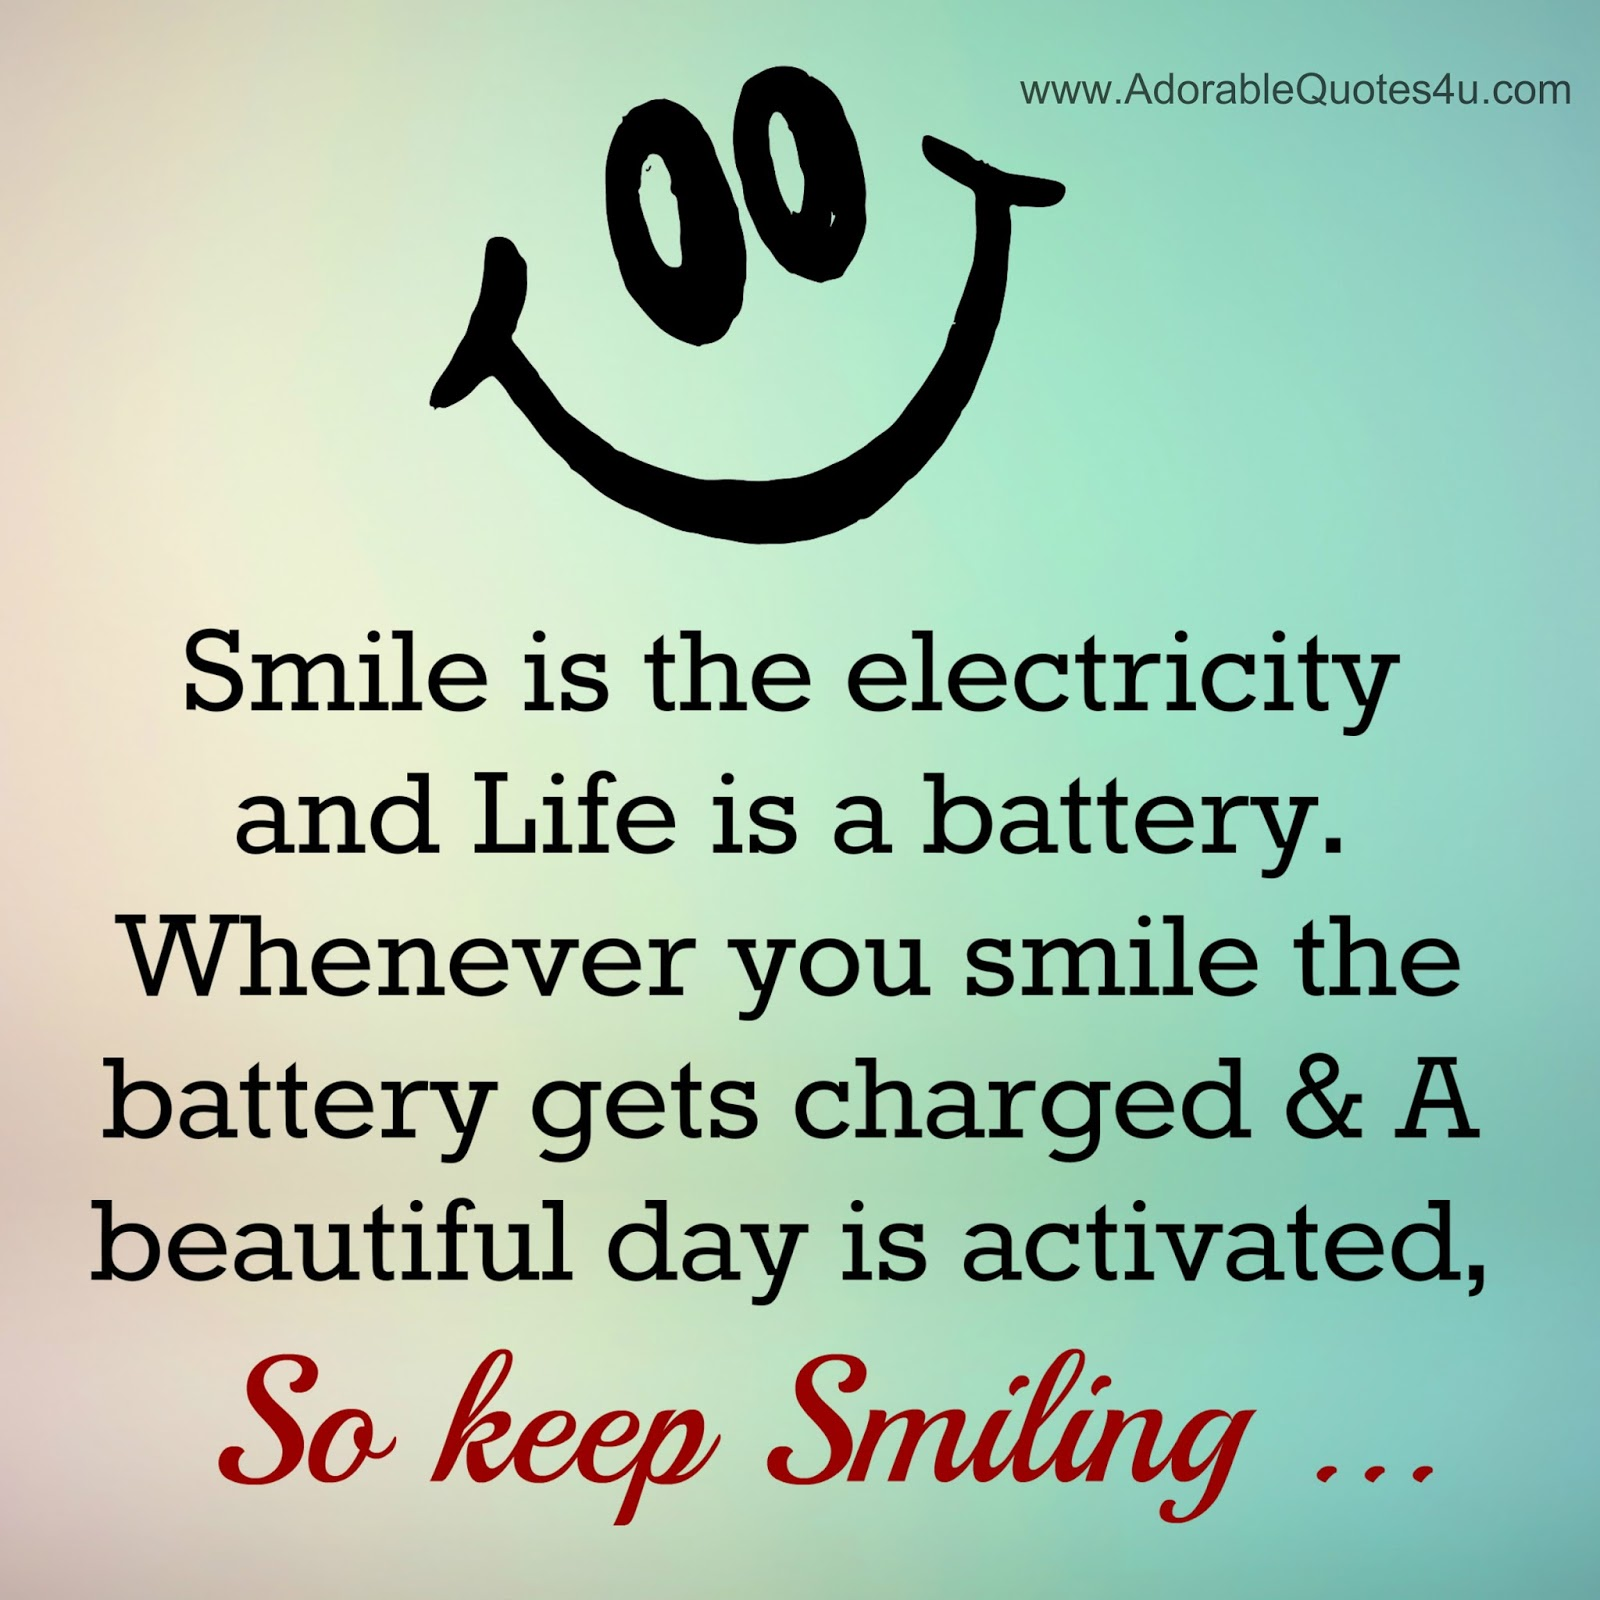 Quotes On Smile Adorable Quotes Smile Is The Electricity And Life Is A Battery